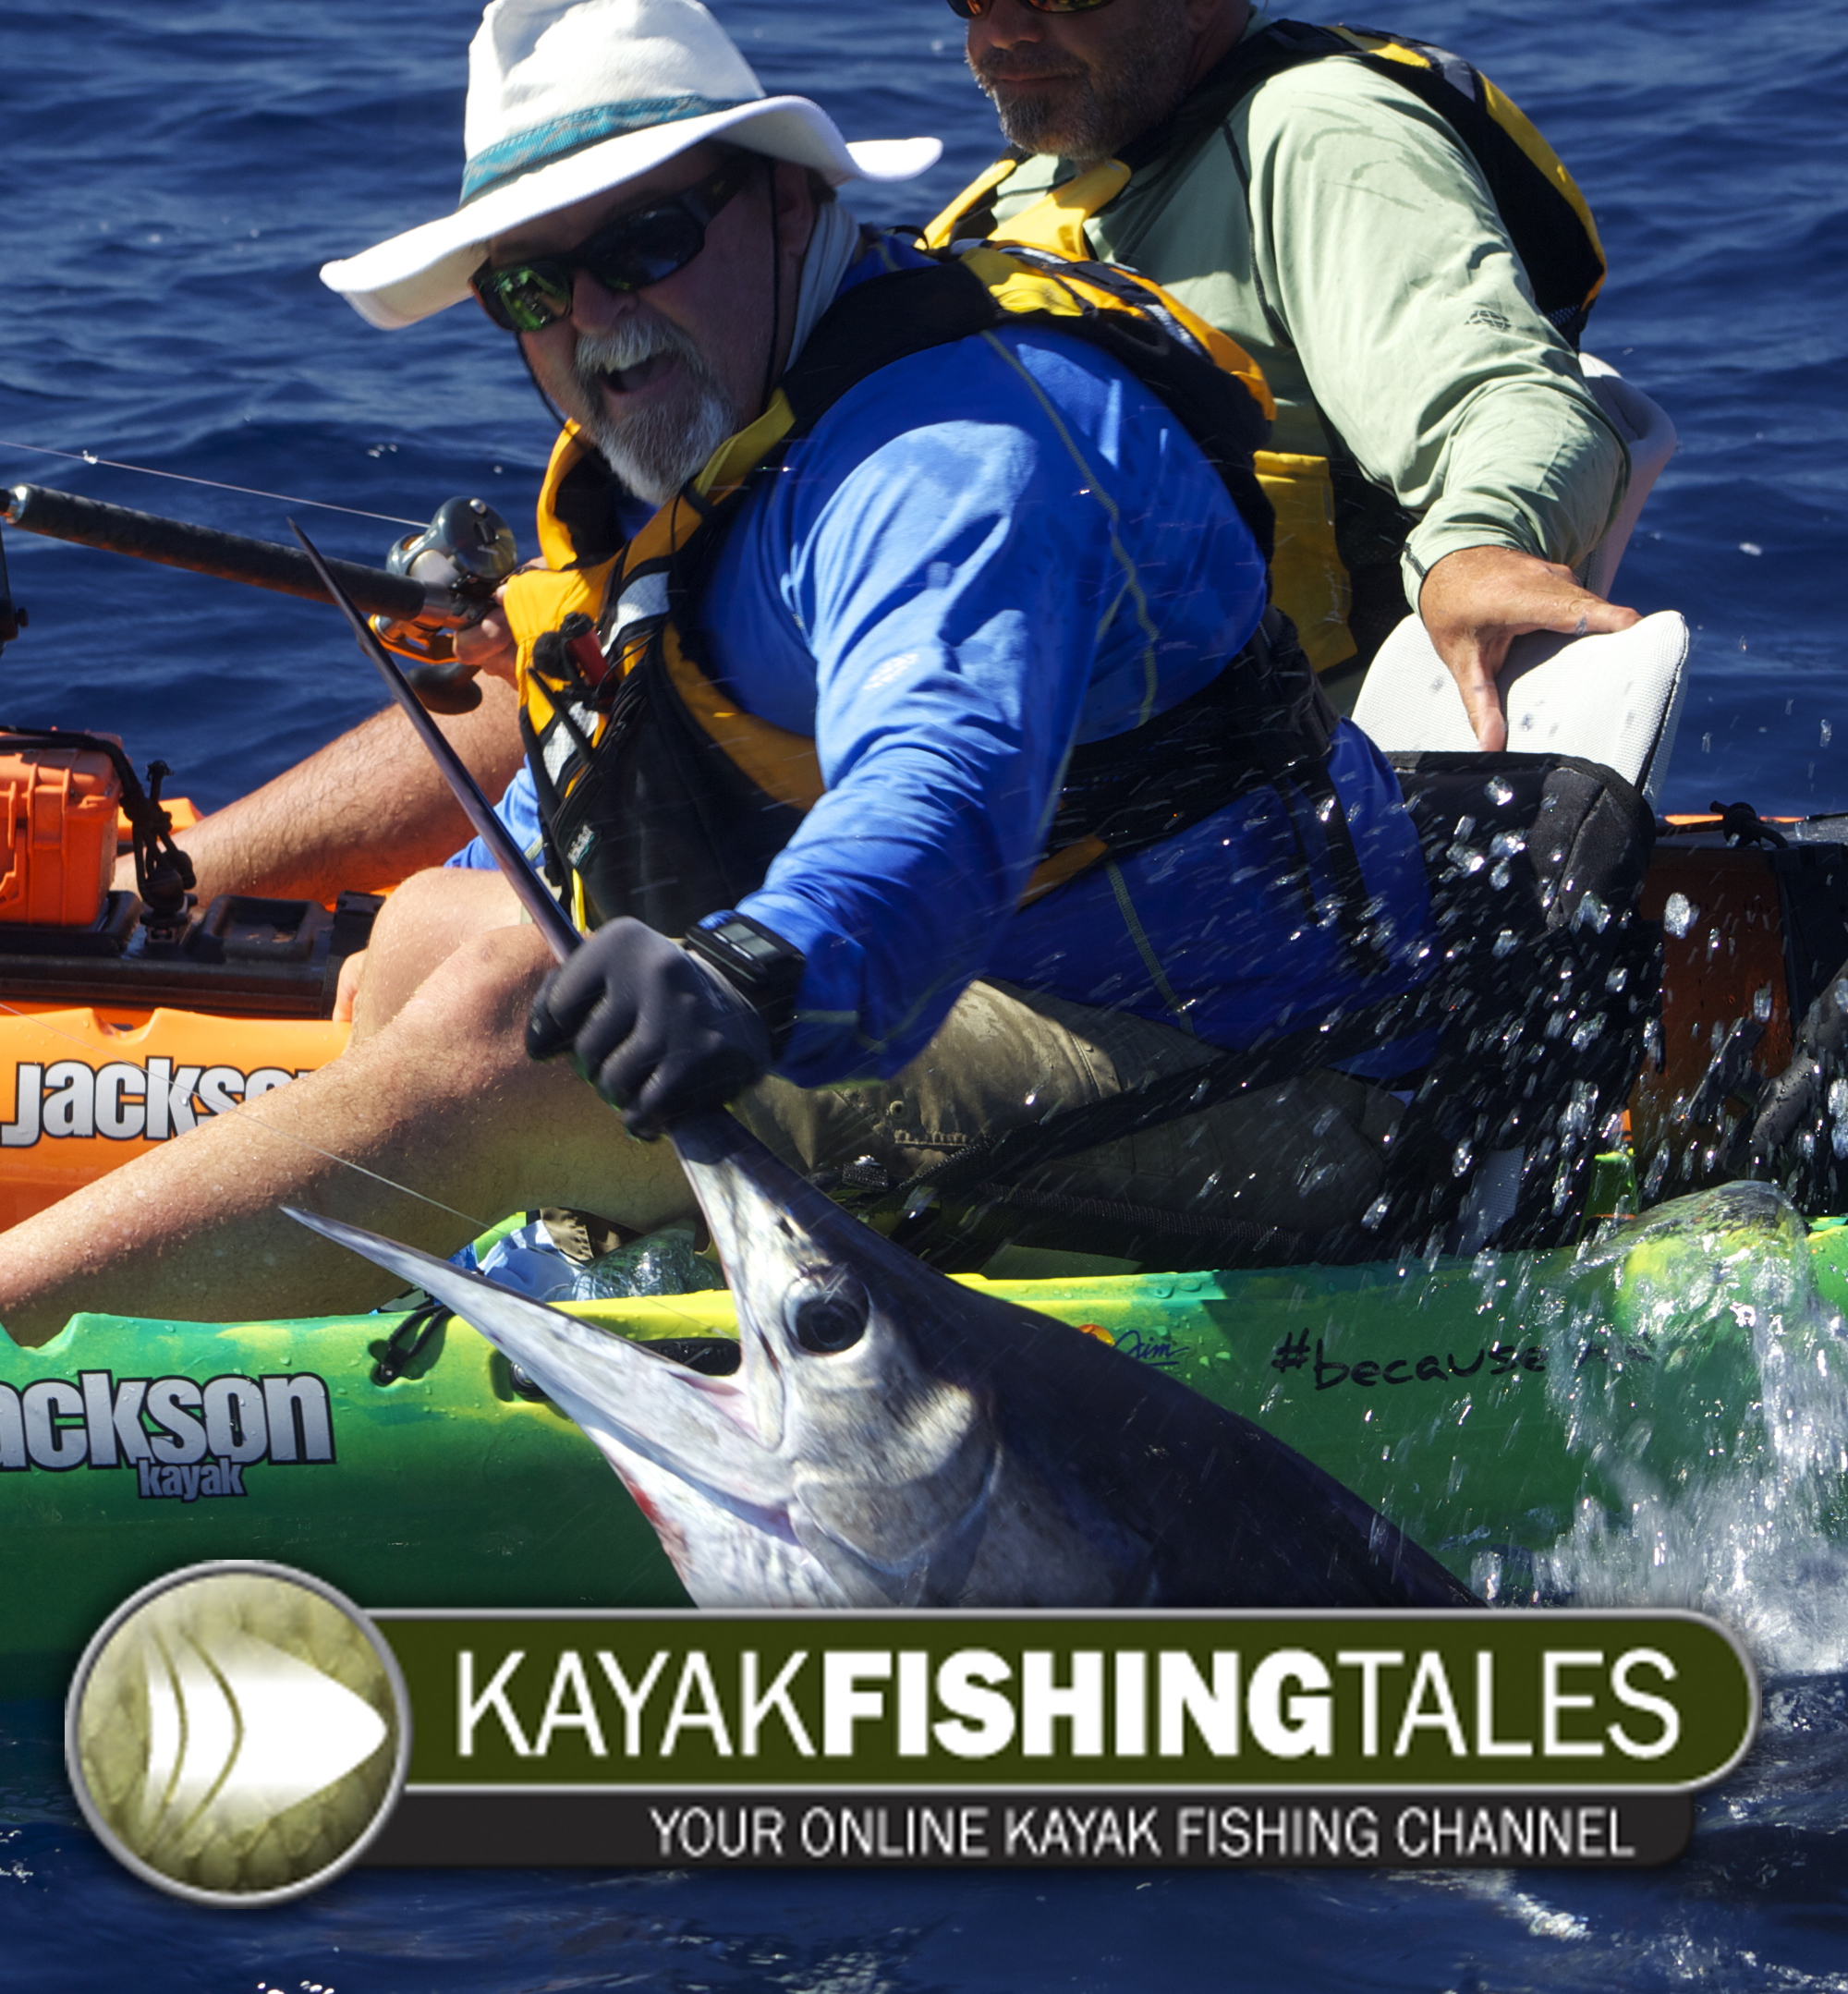 Kayak fishing tales youtube channel and newsletter both for Fishing youtube channels